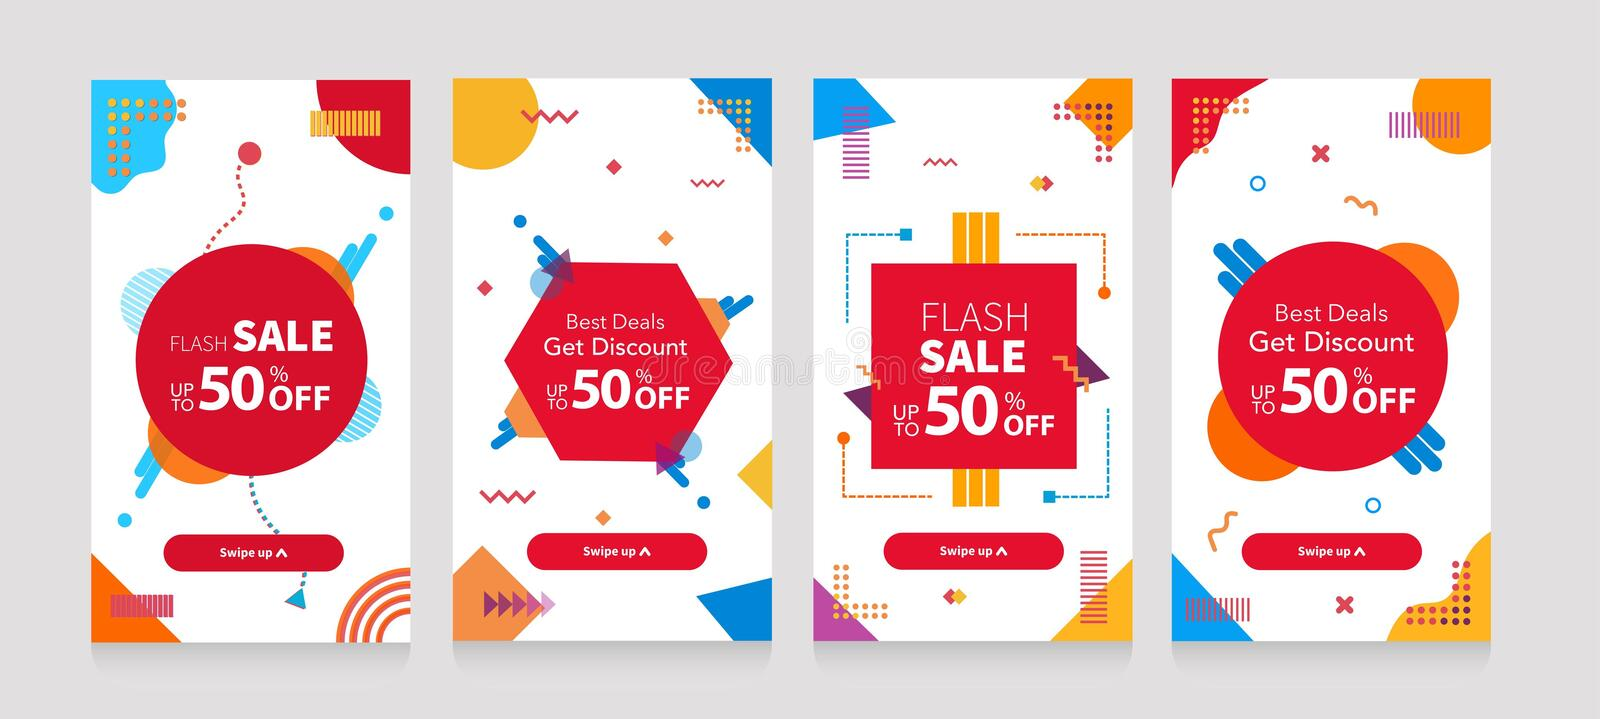 Dynamic modern geometry mobile for flash sale banners. Sale Discount banner template design, Flash sale special offer set stock illustration